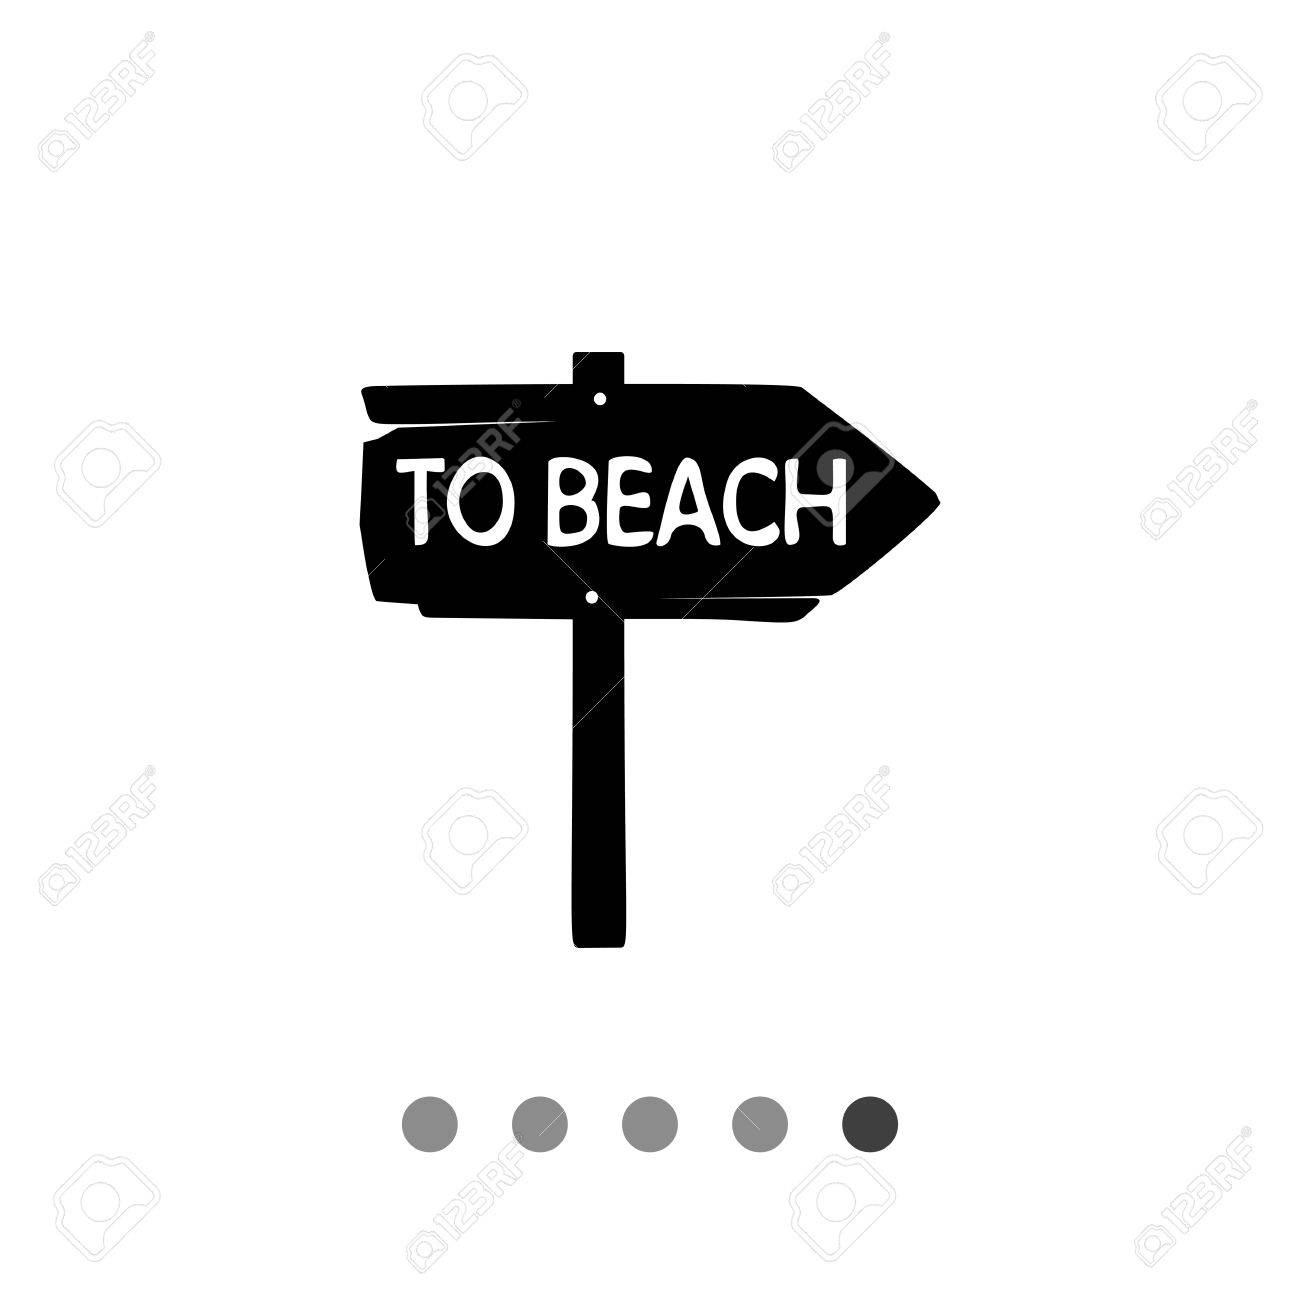 Monochrome Vector Icon Of Vintage Wooden Arrow Sign To Beach Stock